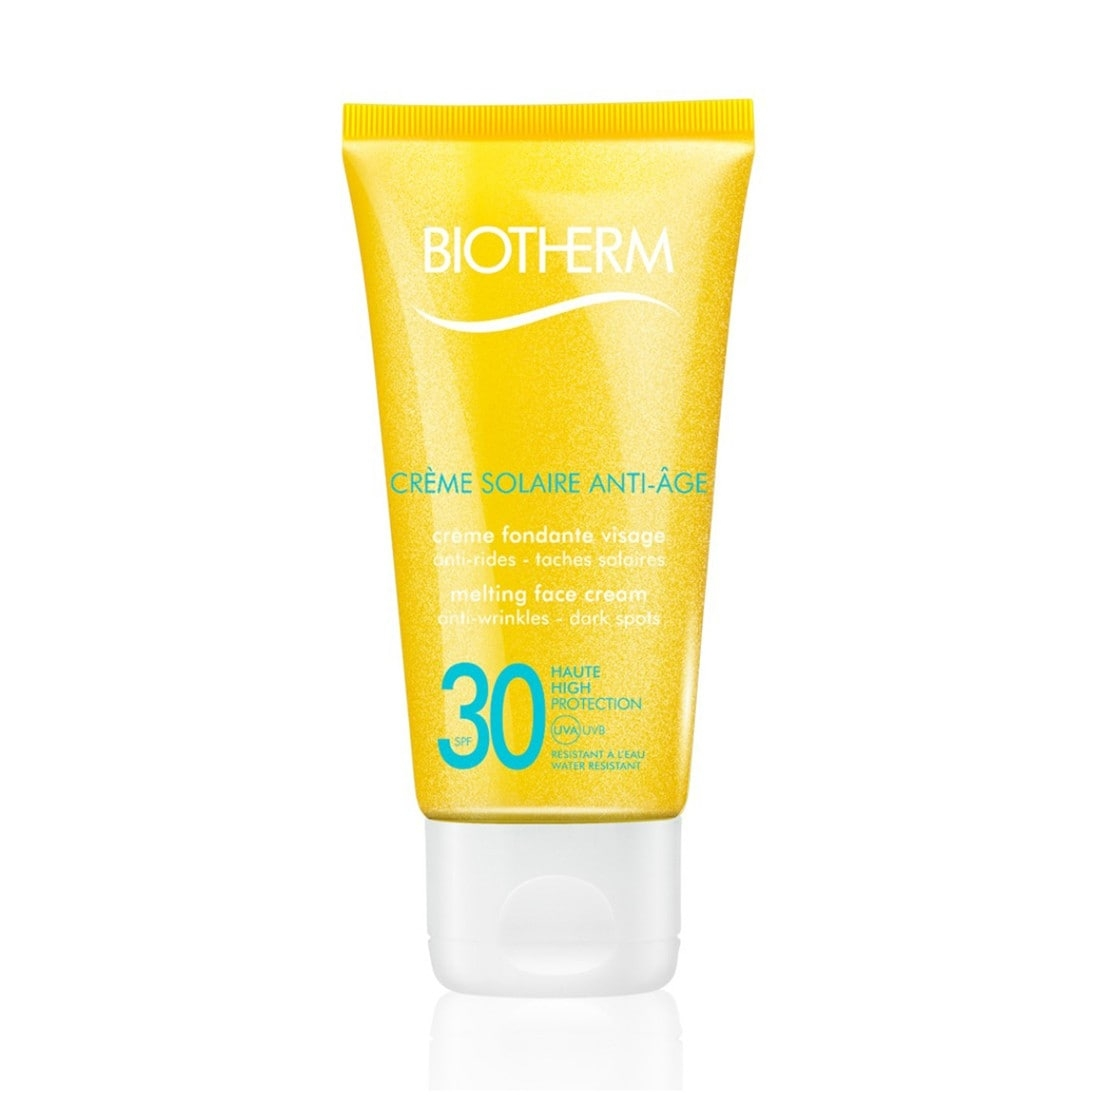 Biotherm Crème Solaire Anti-Age Ultra Melting Face Cream Spf30 50ml